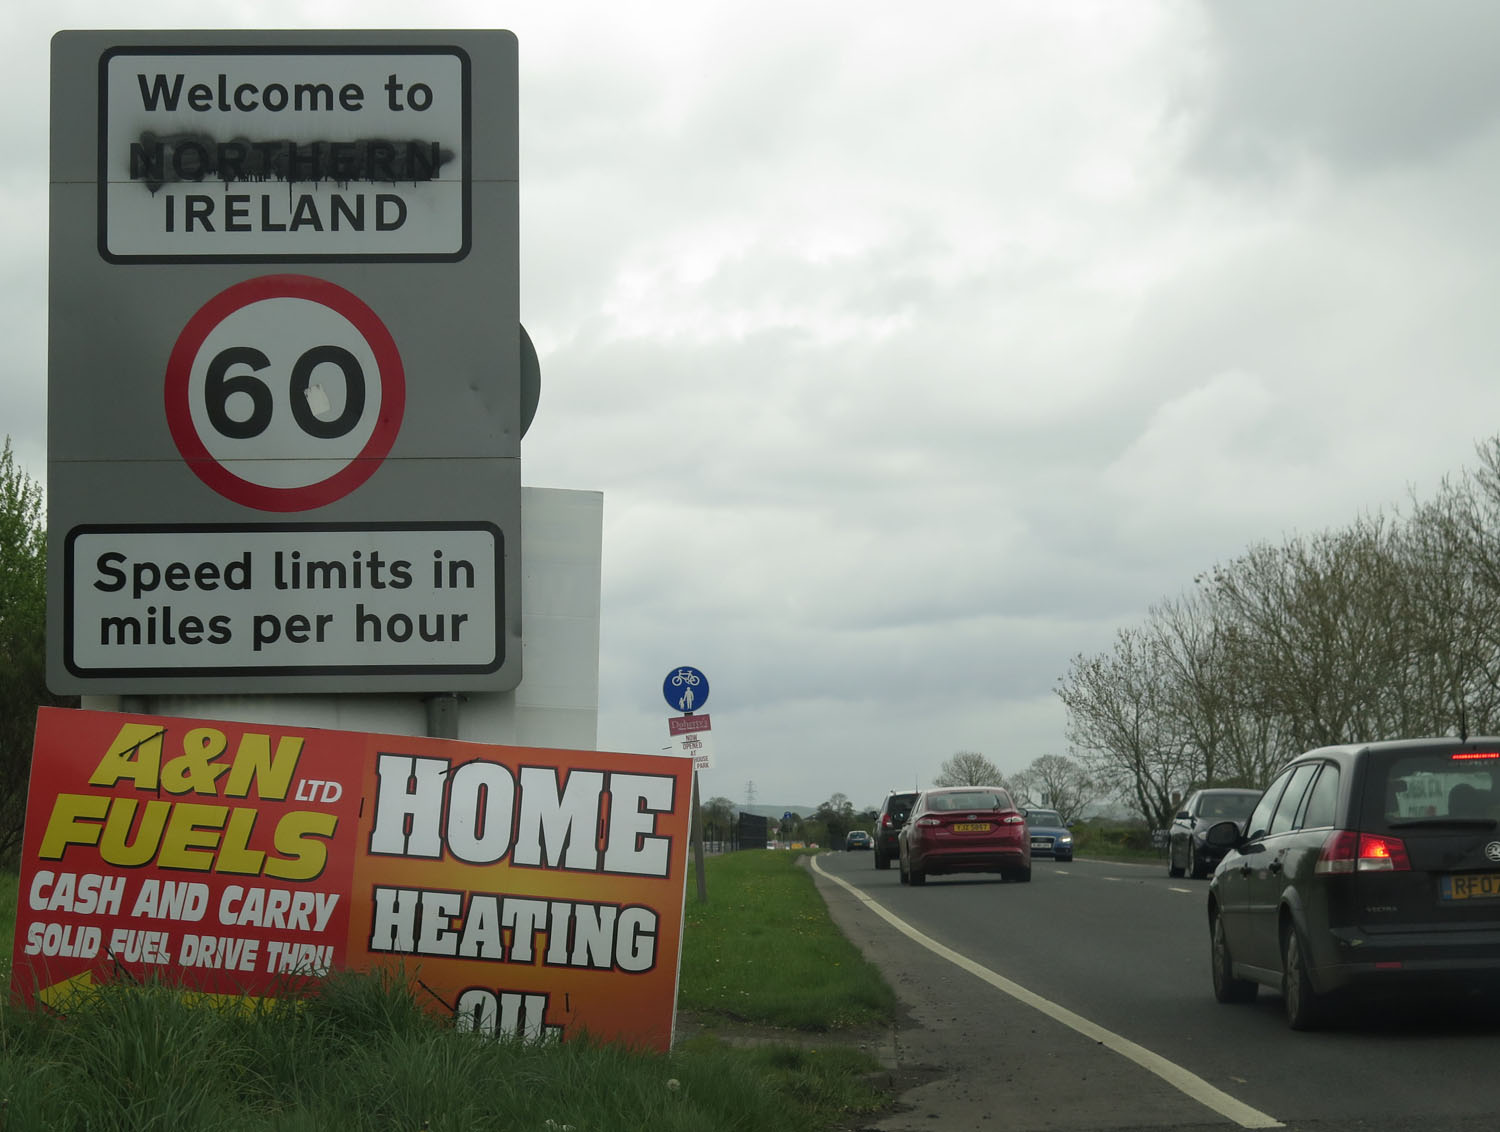 Northern-Ireland-Derry-Londonderry-Road-Sign-Welcome-To-Ireland-Northern-Ireland